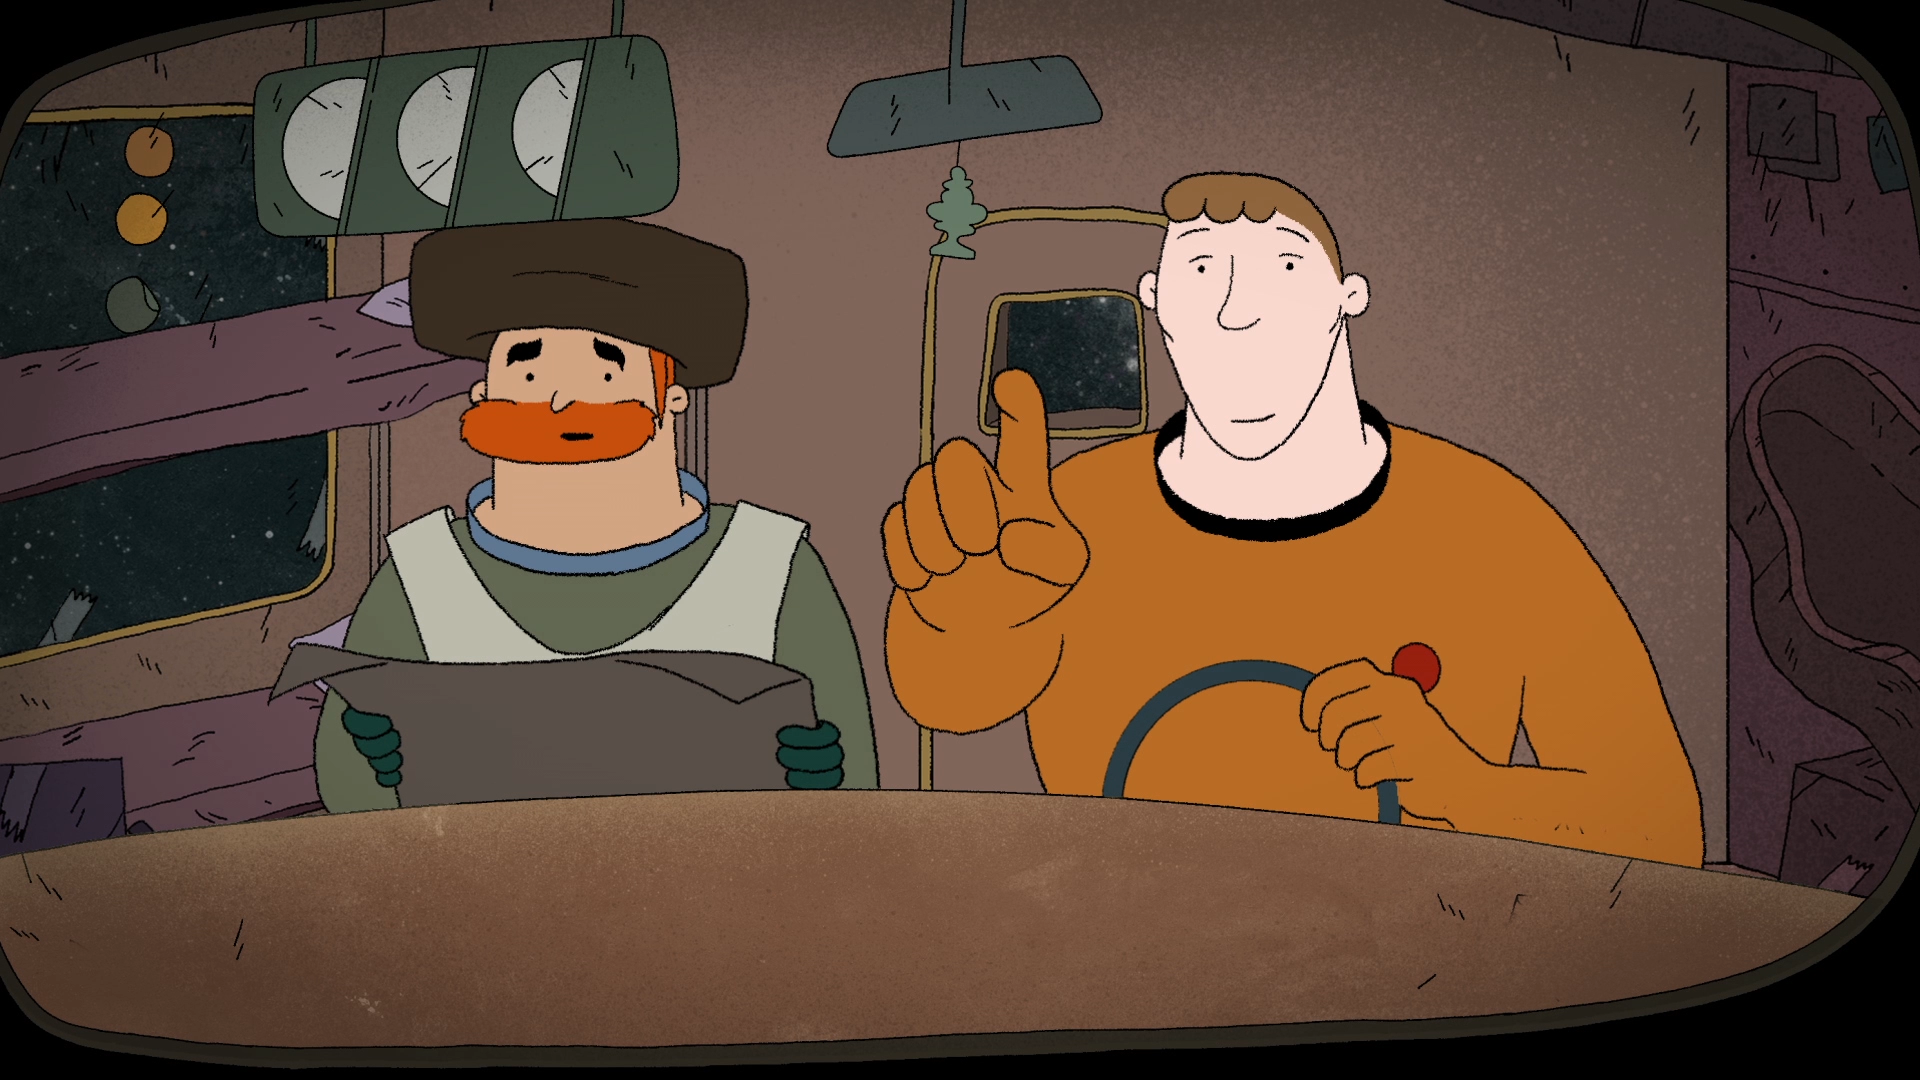 Fig. 2 - The main protagonists of  Niggun  - a rabbi, and a space archaeologist.